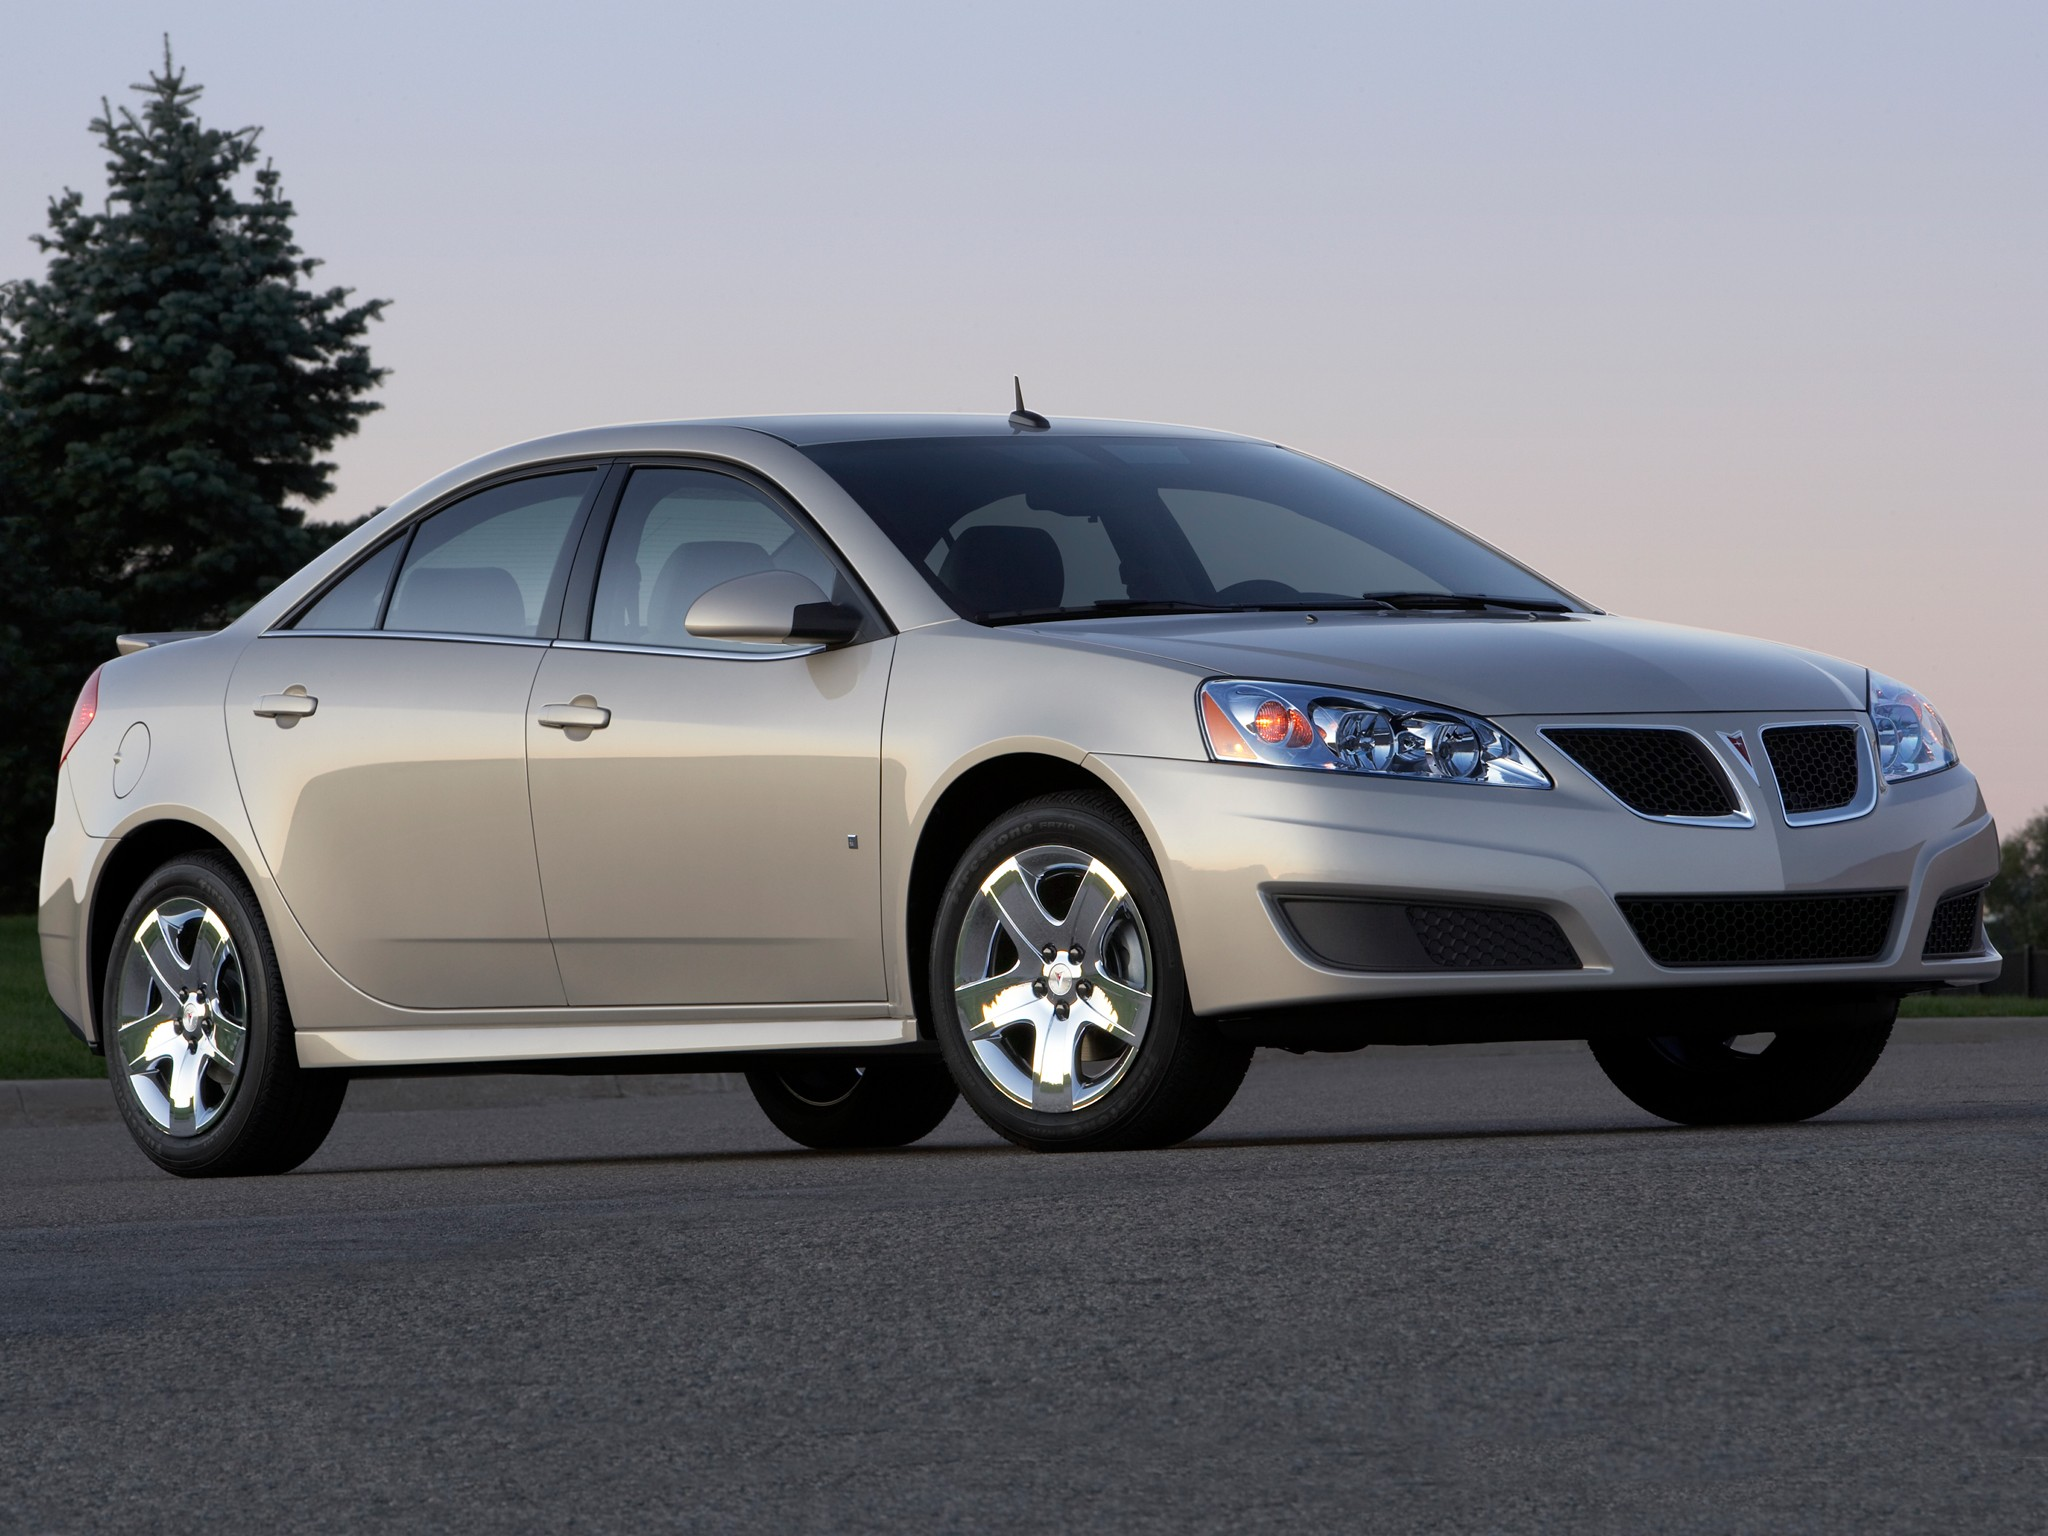 Pontiac g6 photo - 5